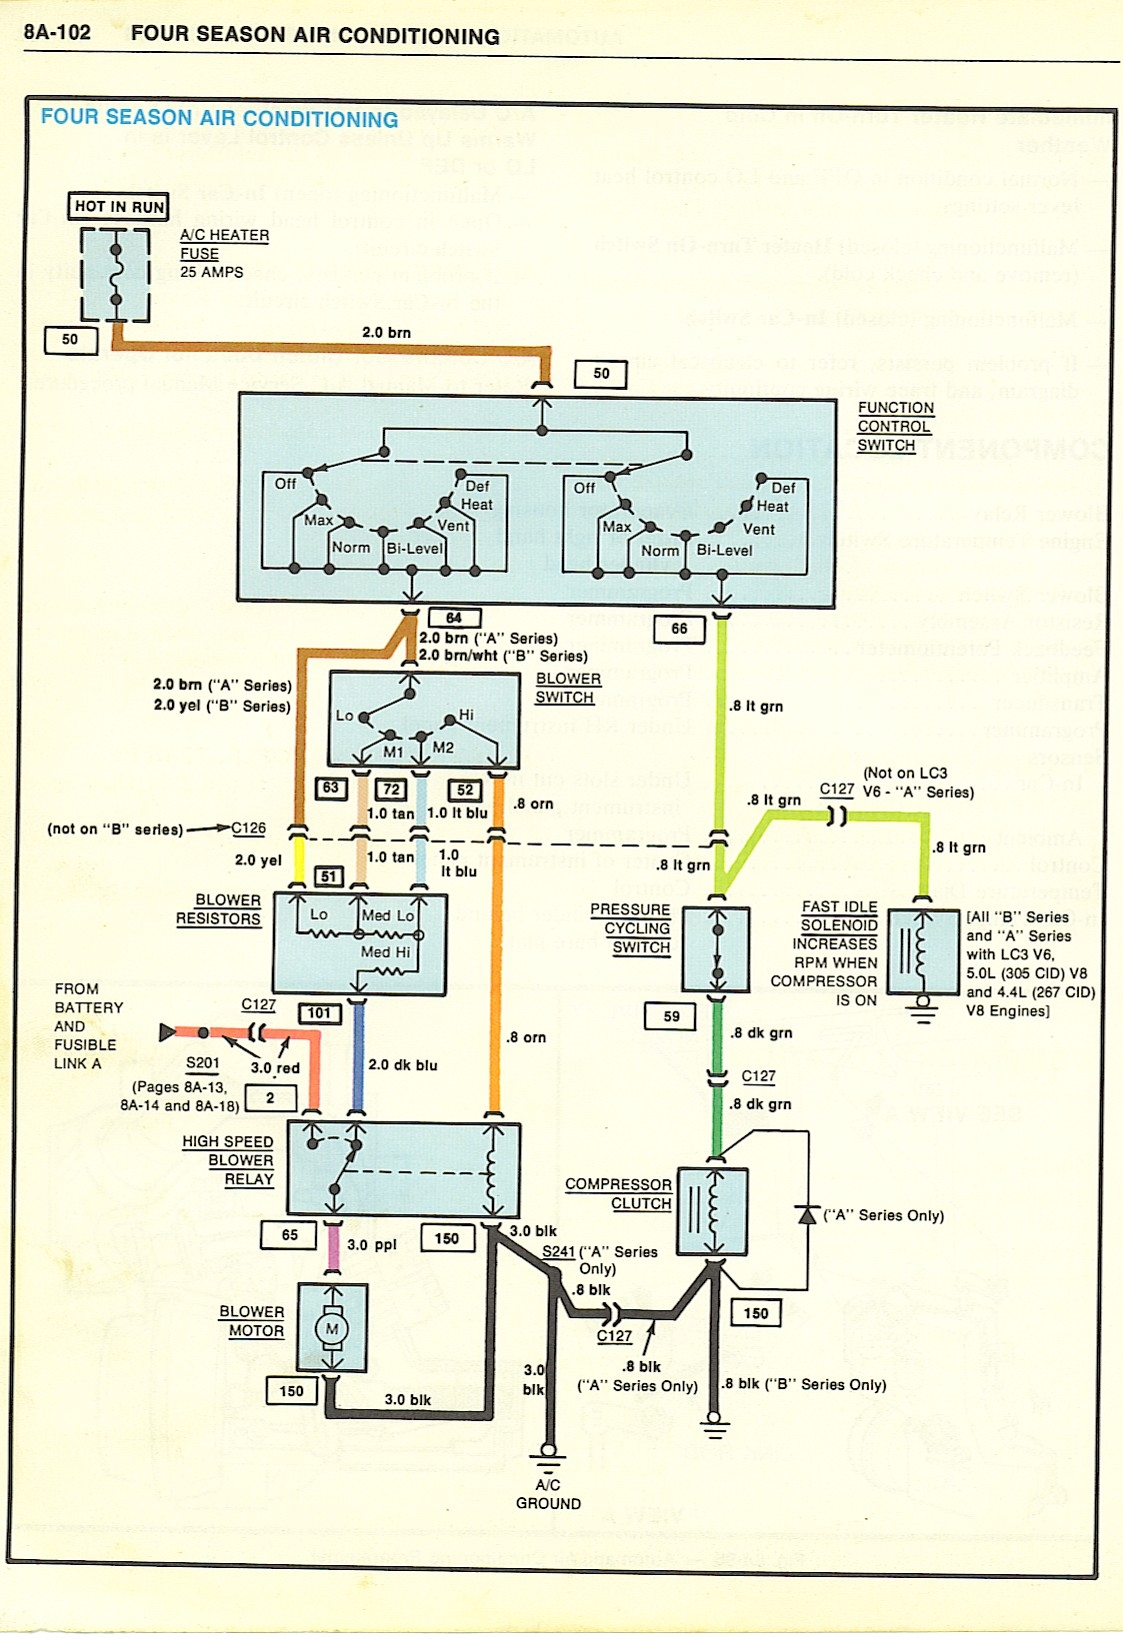 Chevy Diagrams Wiring 1968 Camero A C Drawing